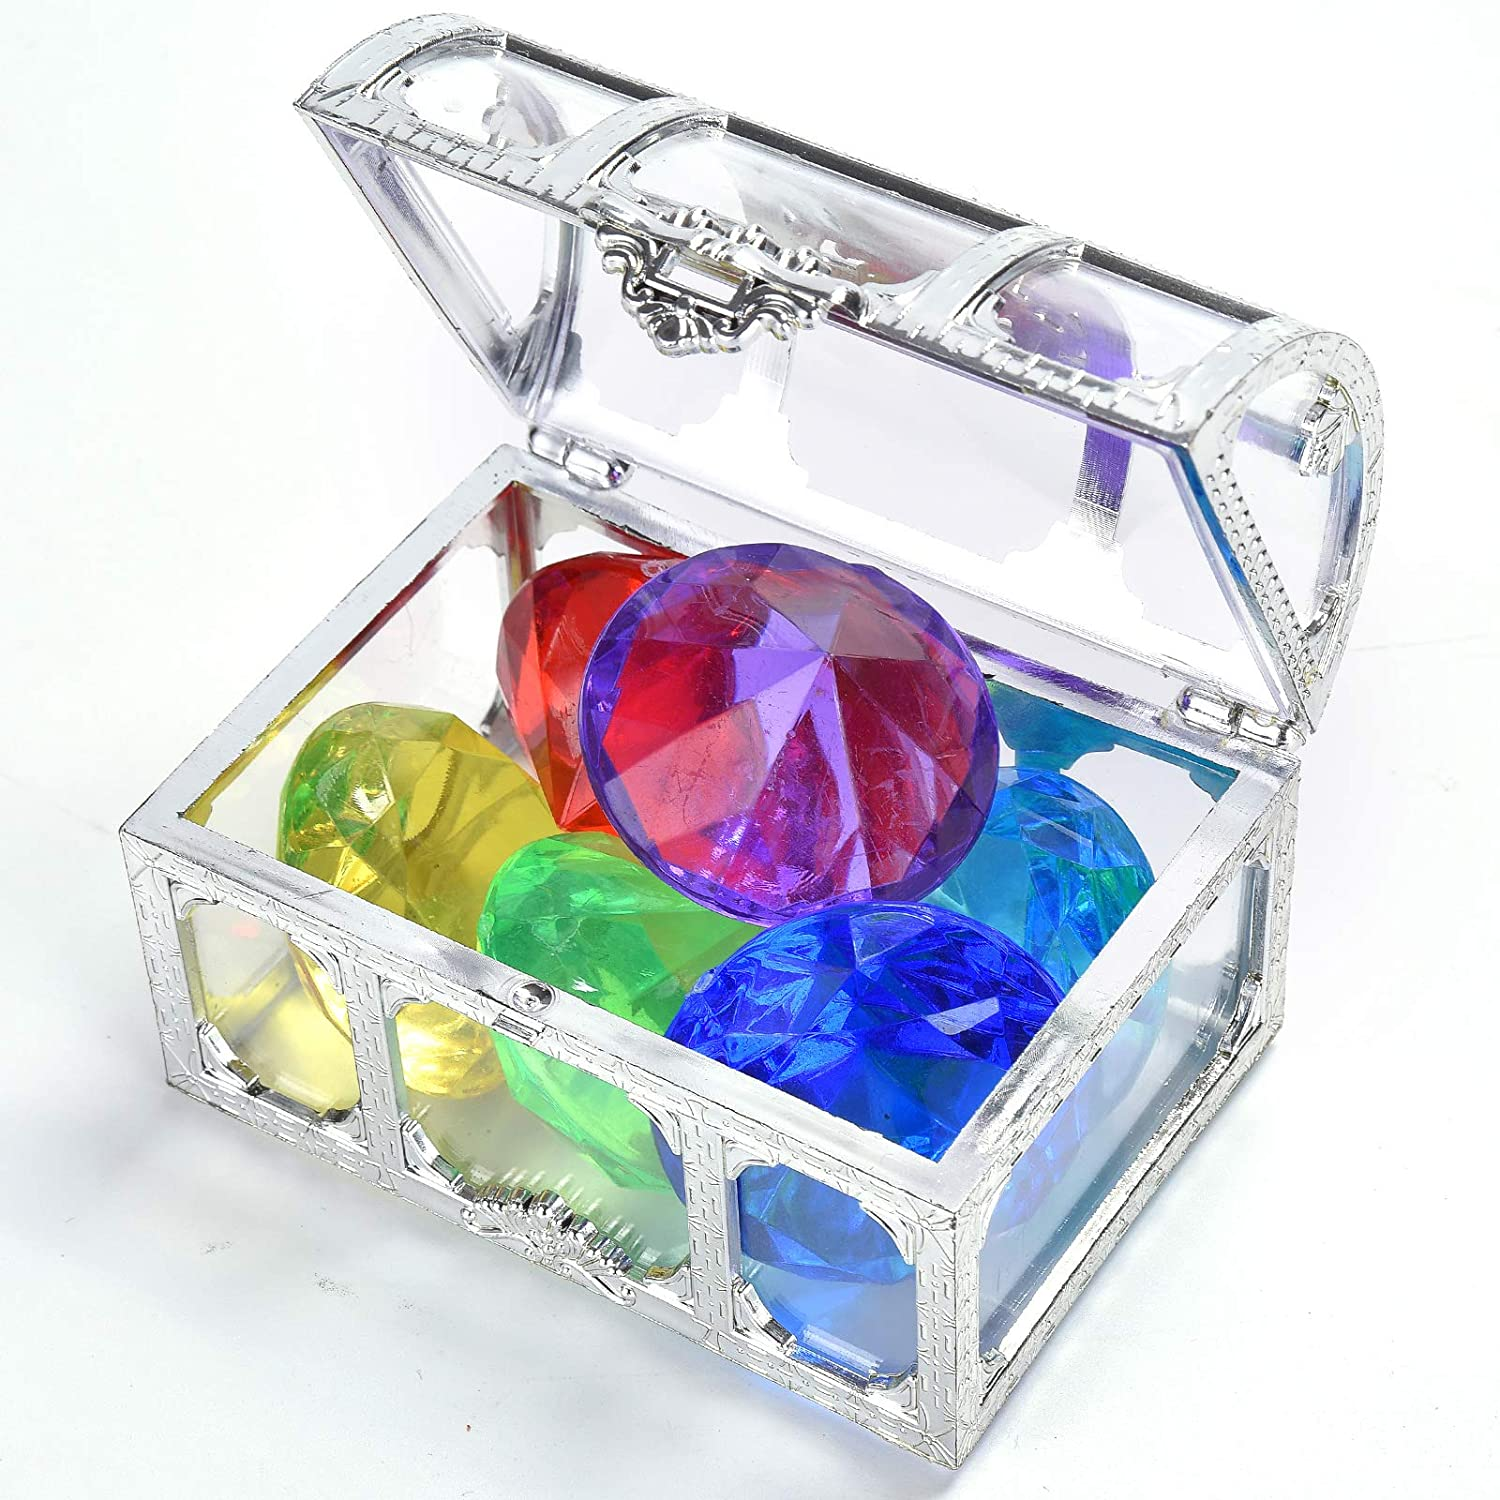 silver white Diving Gem Pool Toy 6 Big Colorful Diamonds Set with Treasure Pirate Box Summer Swimming Gem Diving Toys Set Dive Throw Toy Set Underwater Swimming Toy for Pool Use Treasures Gift Sets